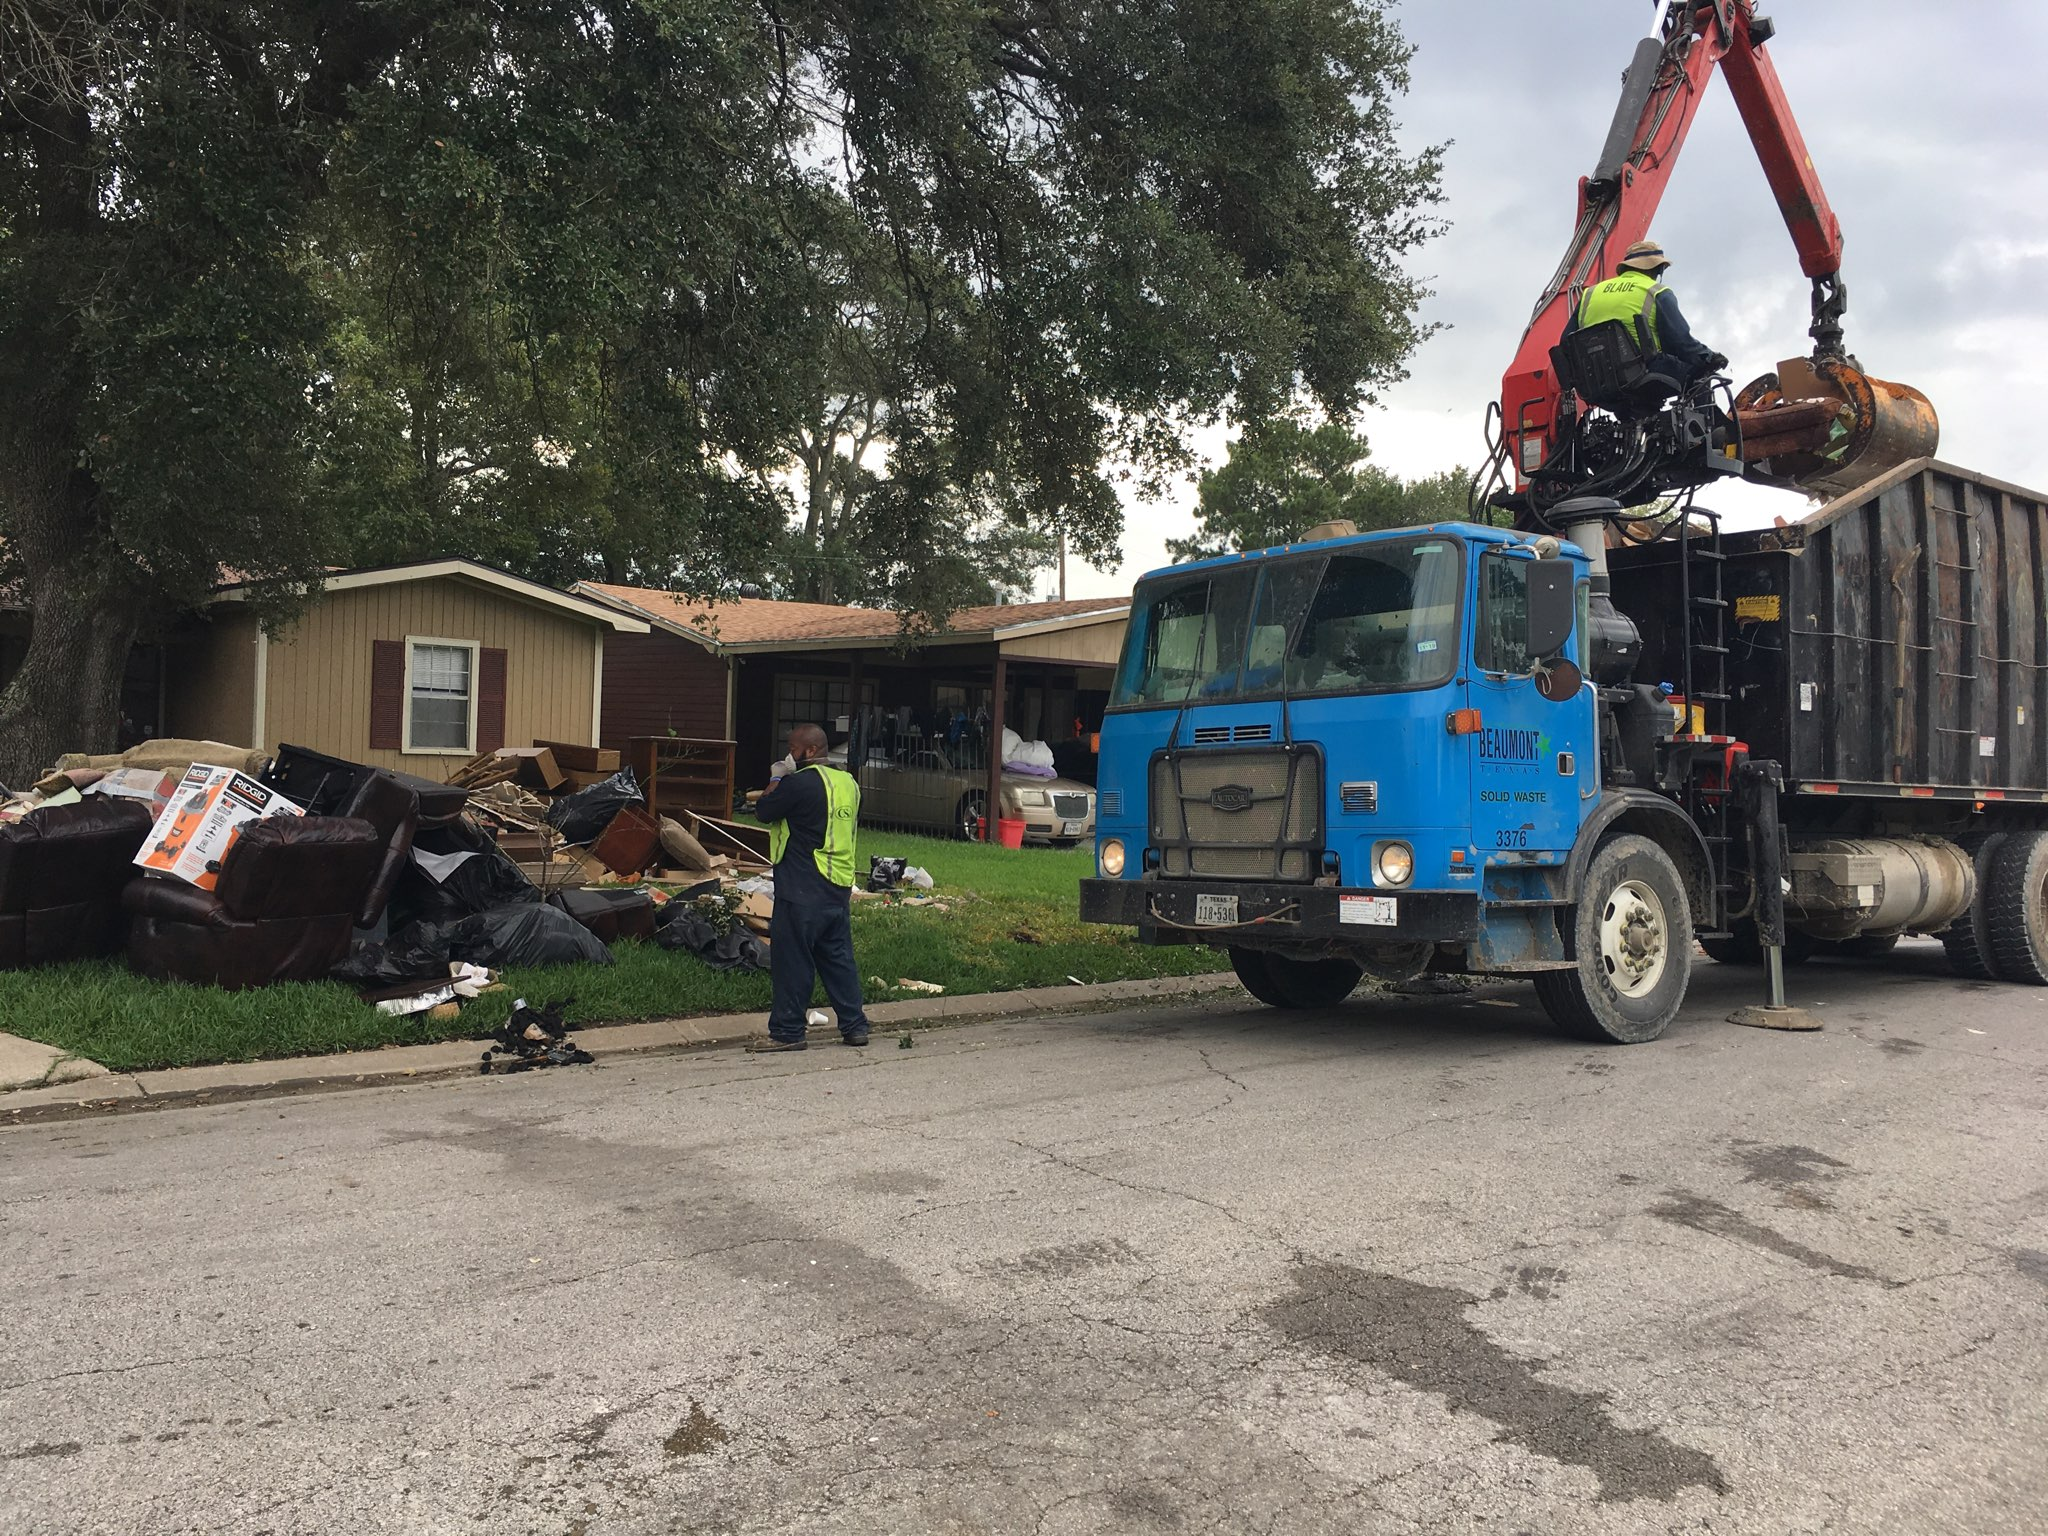 The City of Beaumont will work for weeks to remove the piles of debris taken from flooded homes.